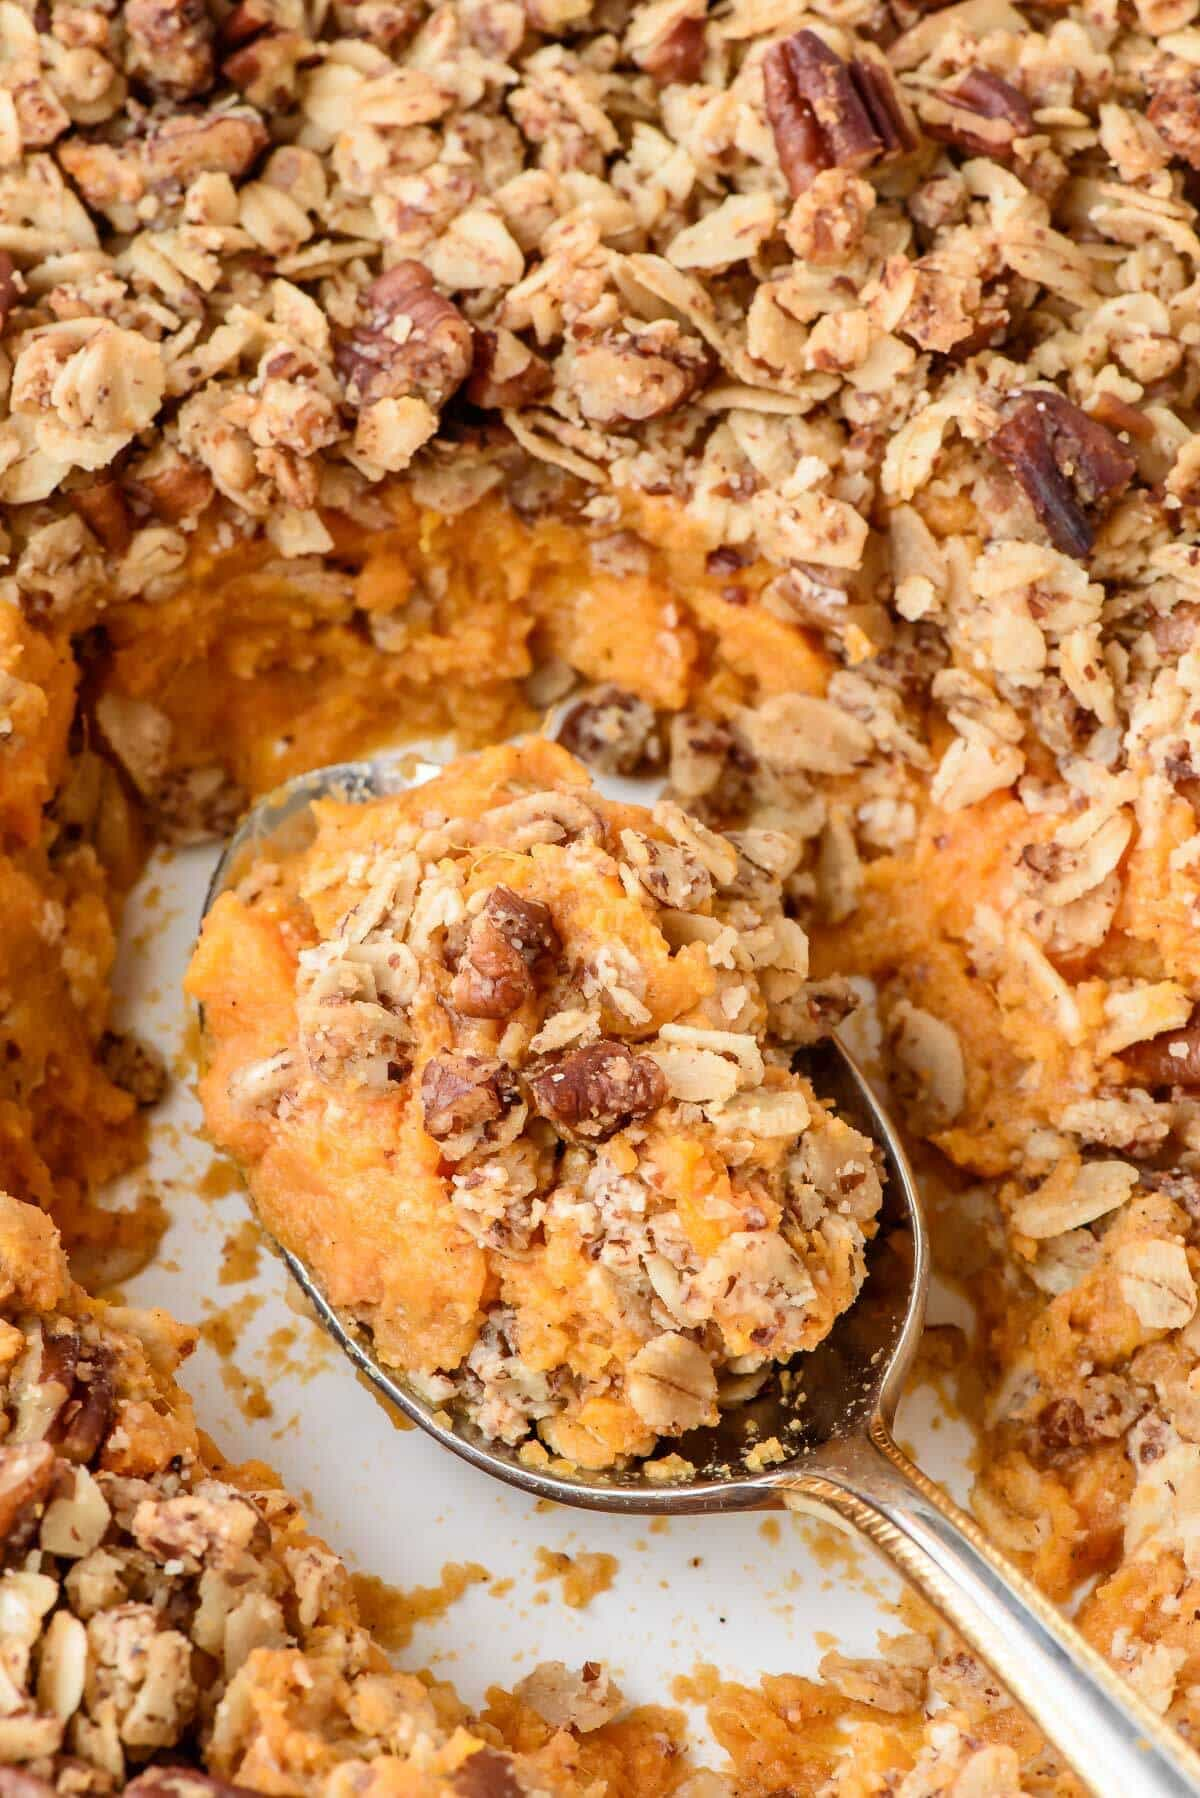 You will never believe this healthy sweet potato casserole is vegan, dairy free and gluten free! Made with coconut oil, maple syrup and vanilla beans with an irresistible pecan oat topping.